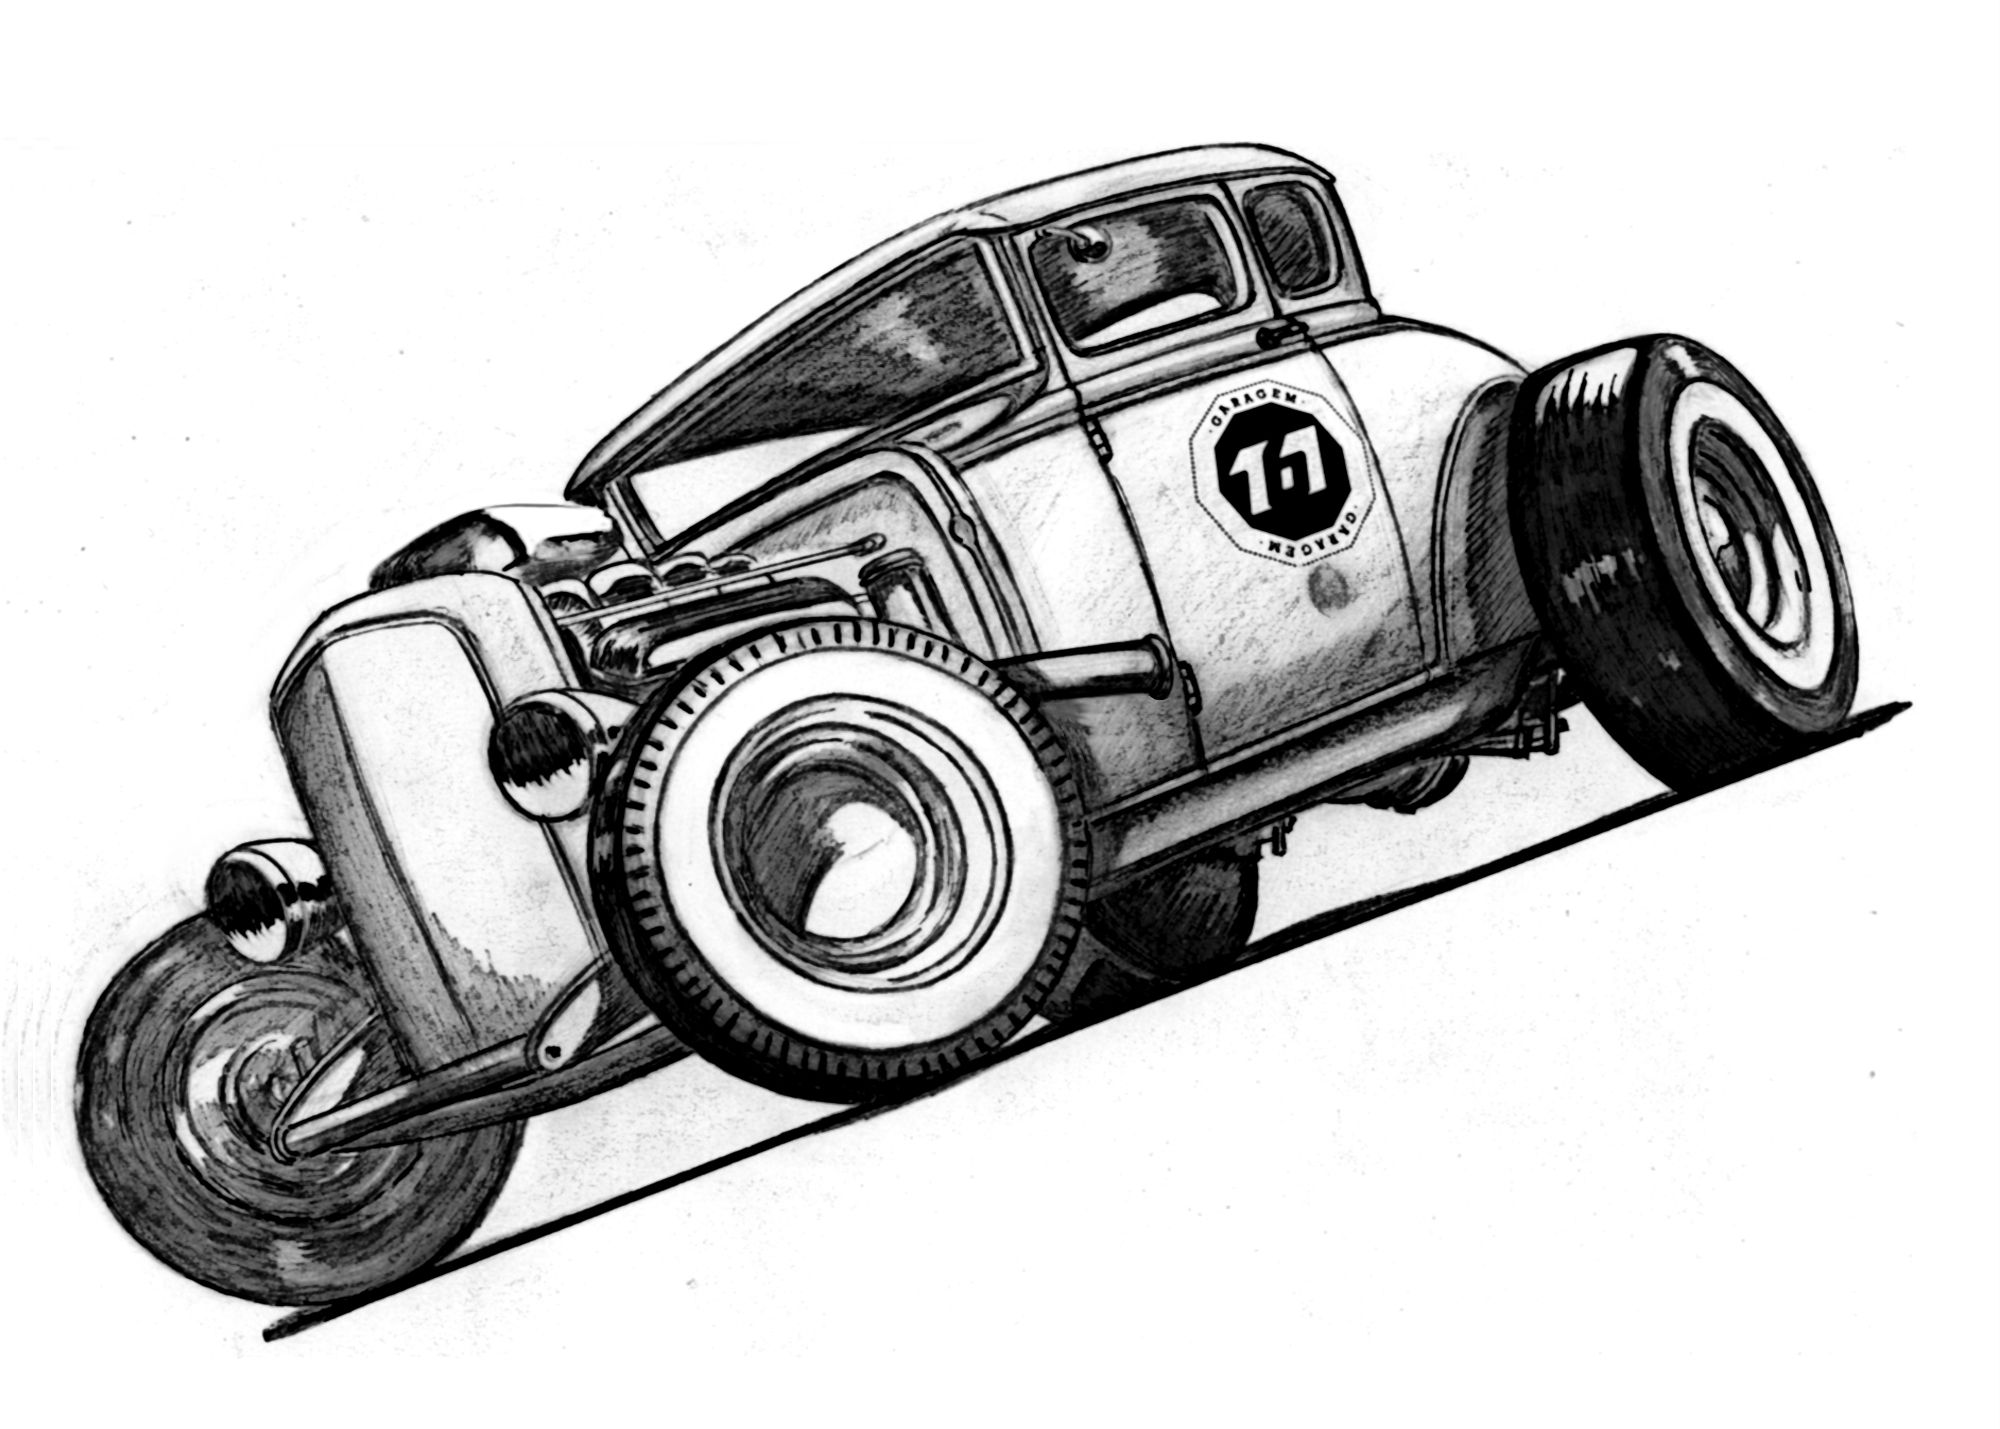 It's just a picture of Lucrative Drawing Of Hot Rods